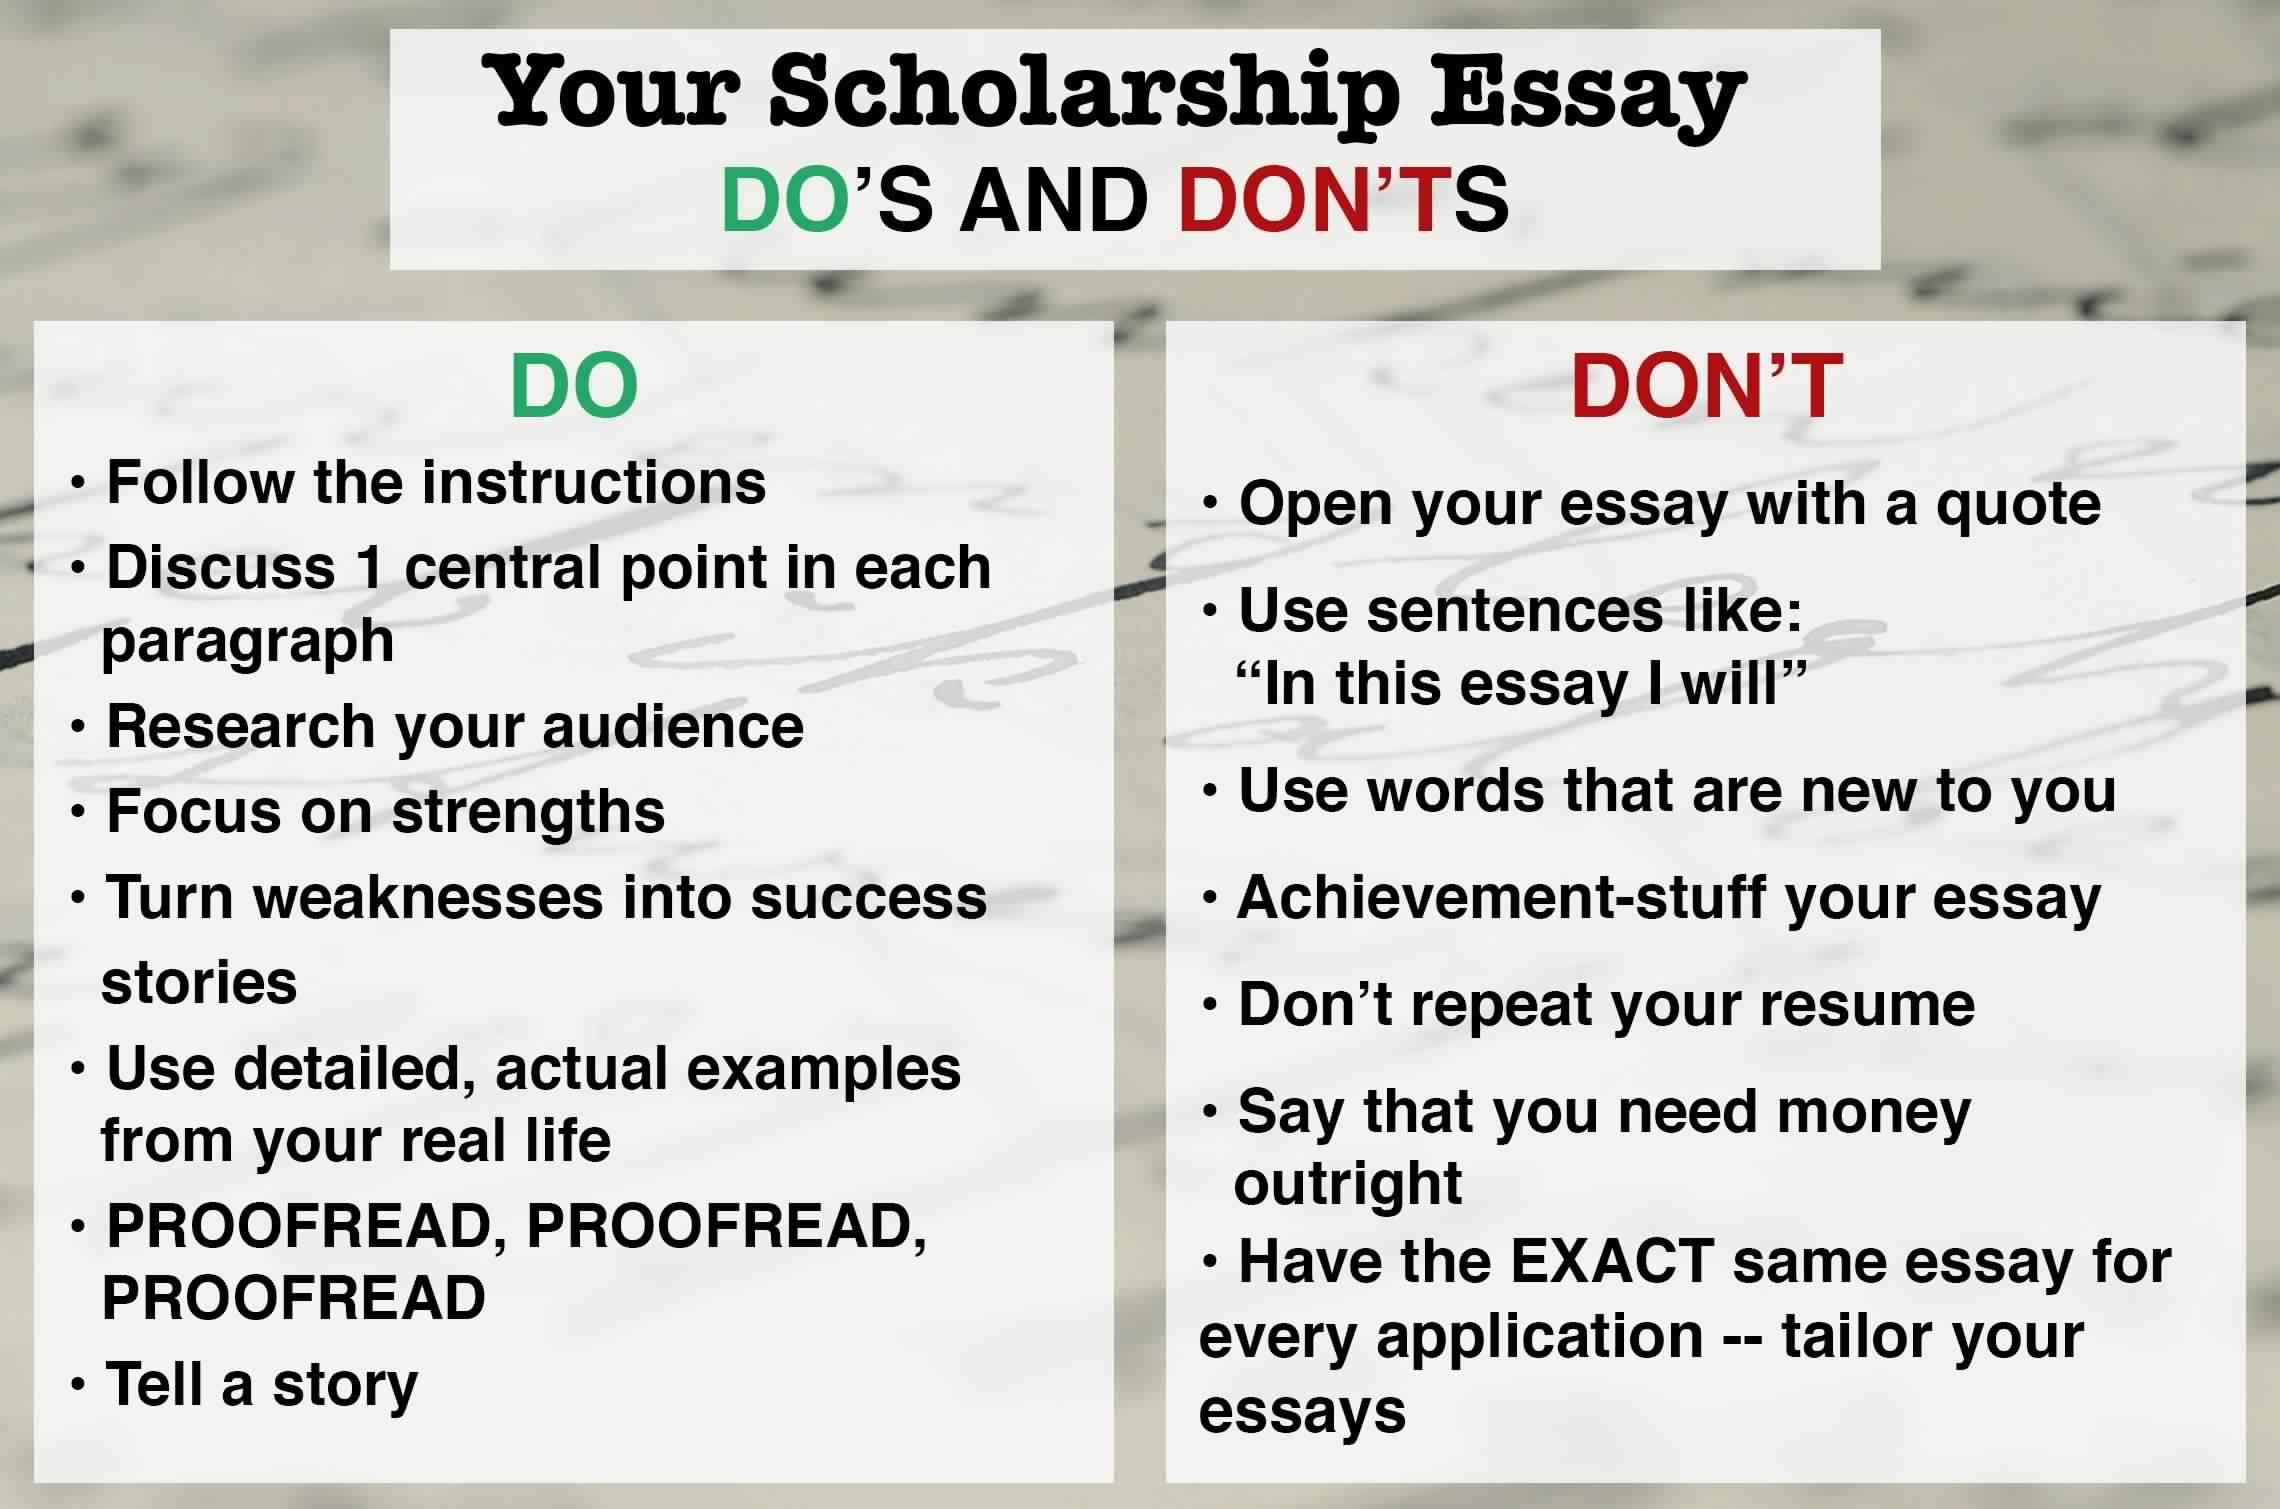 Essay scholarships for college students